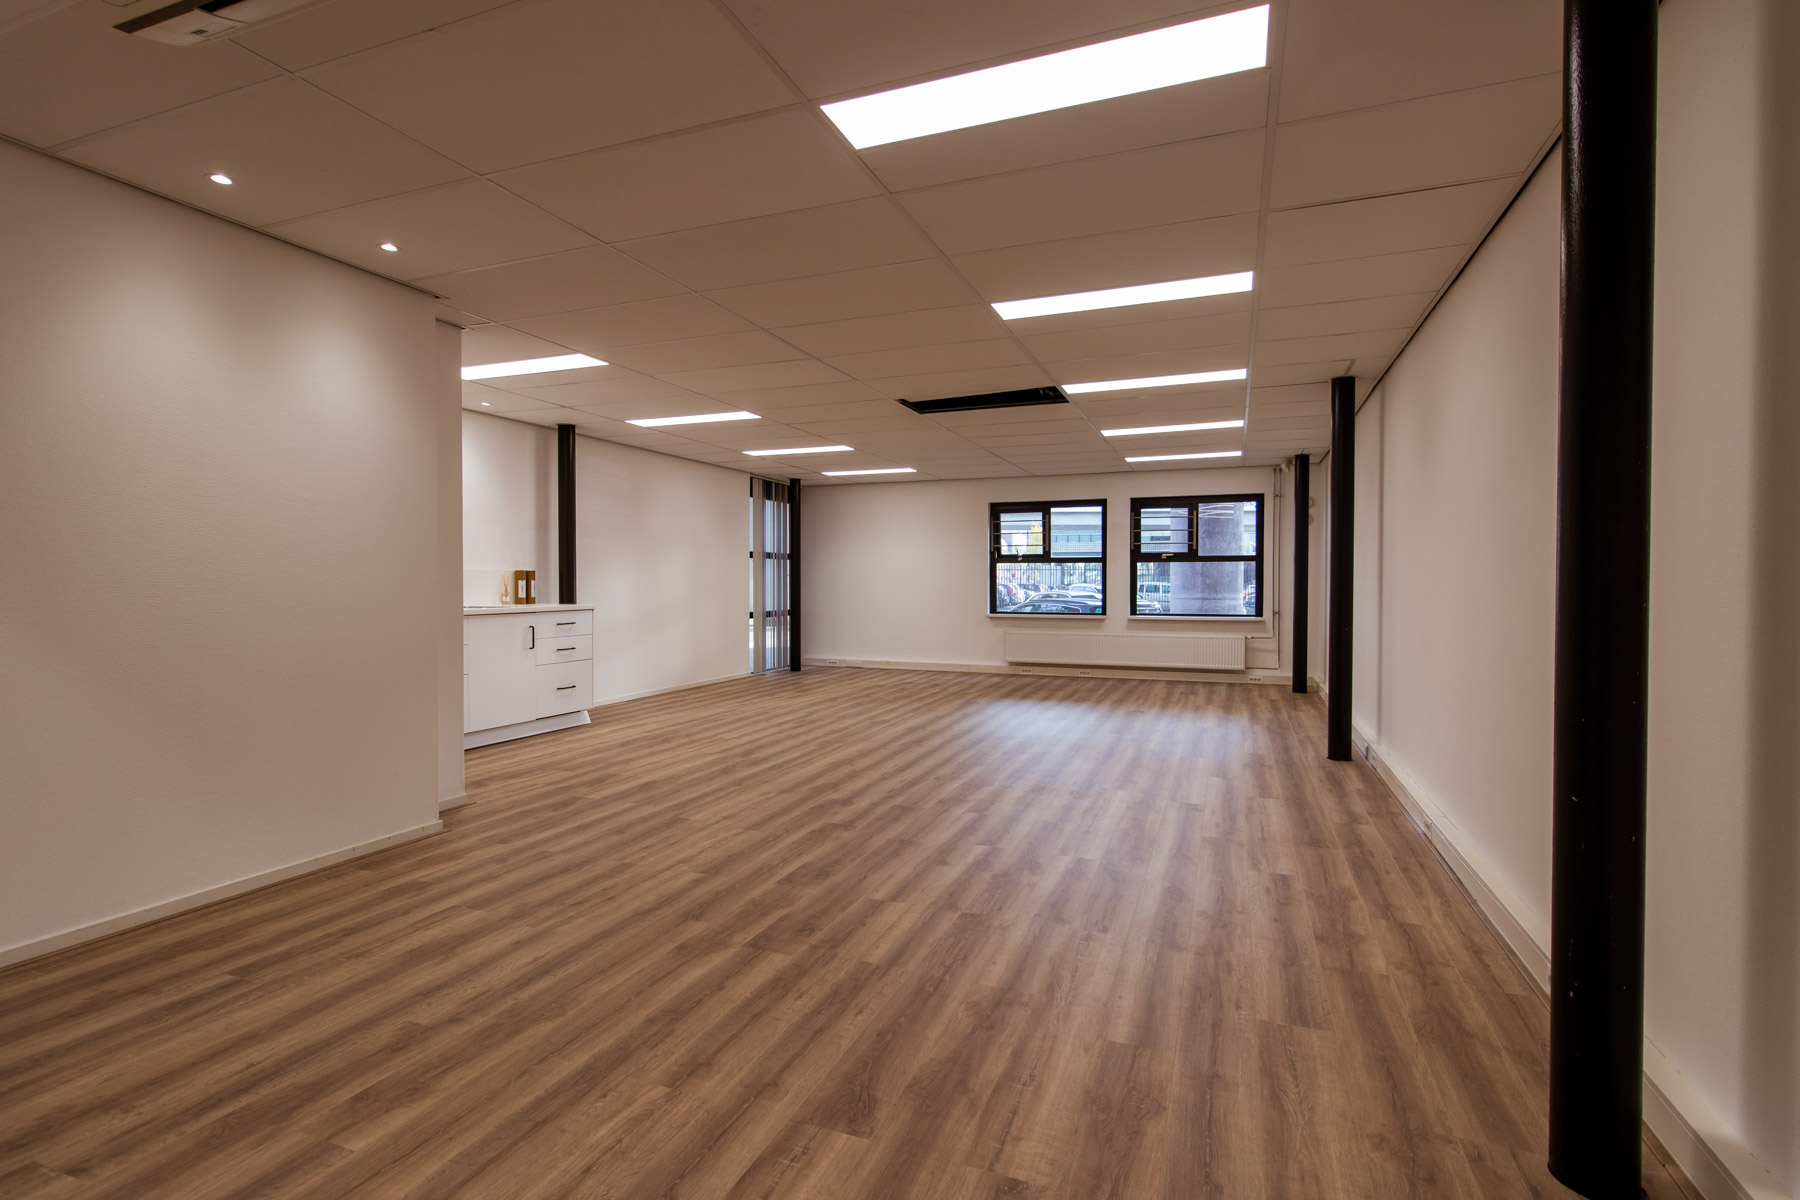 Rent office space Arlandaweg 92, Amsterdam (48)